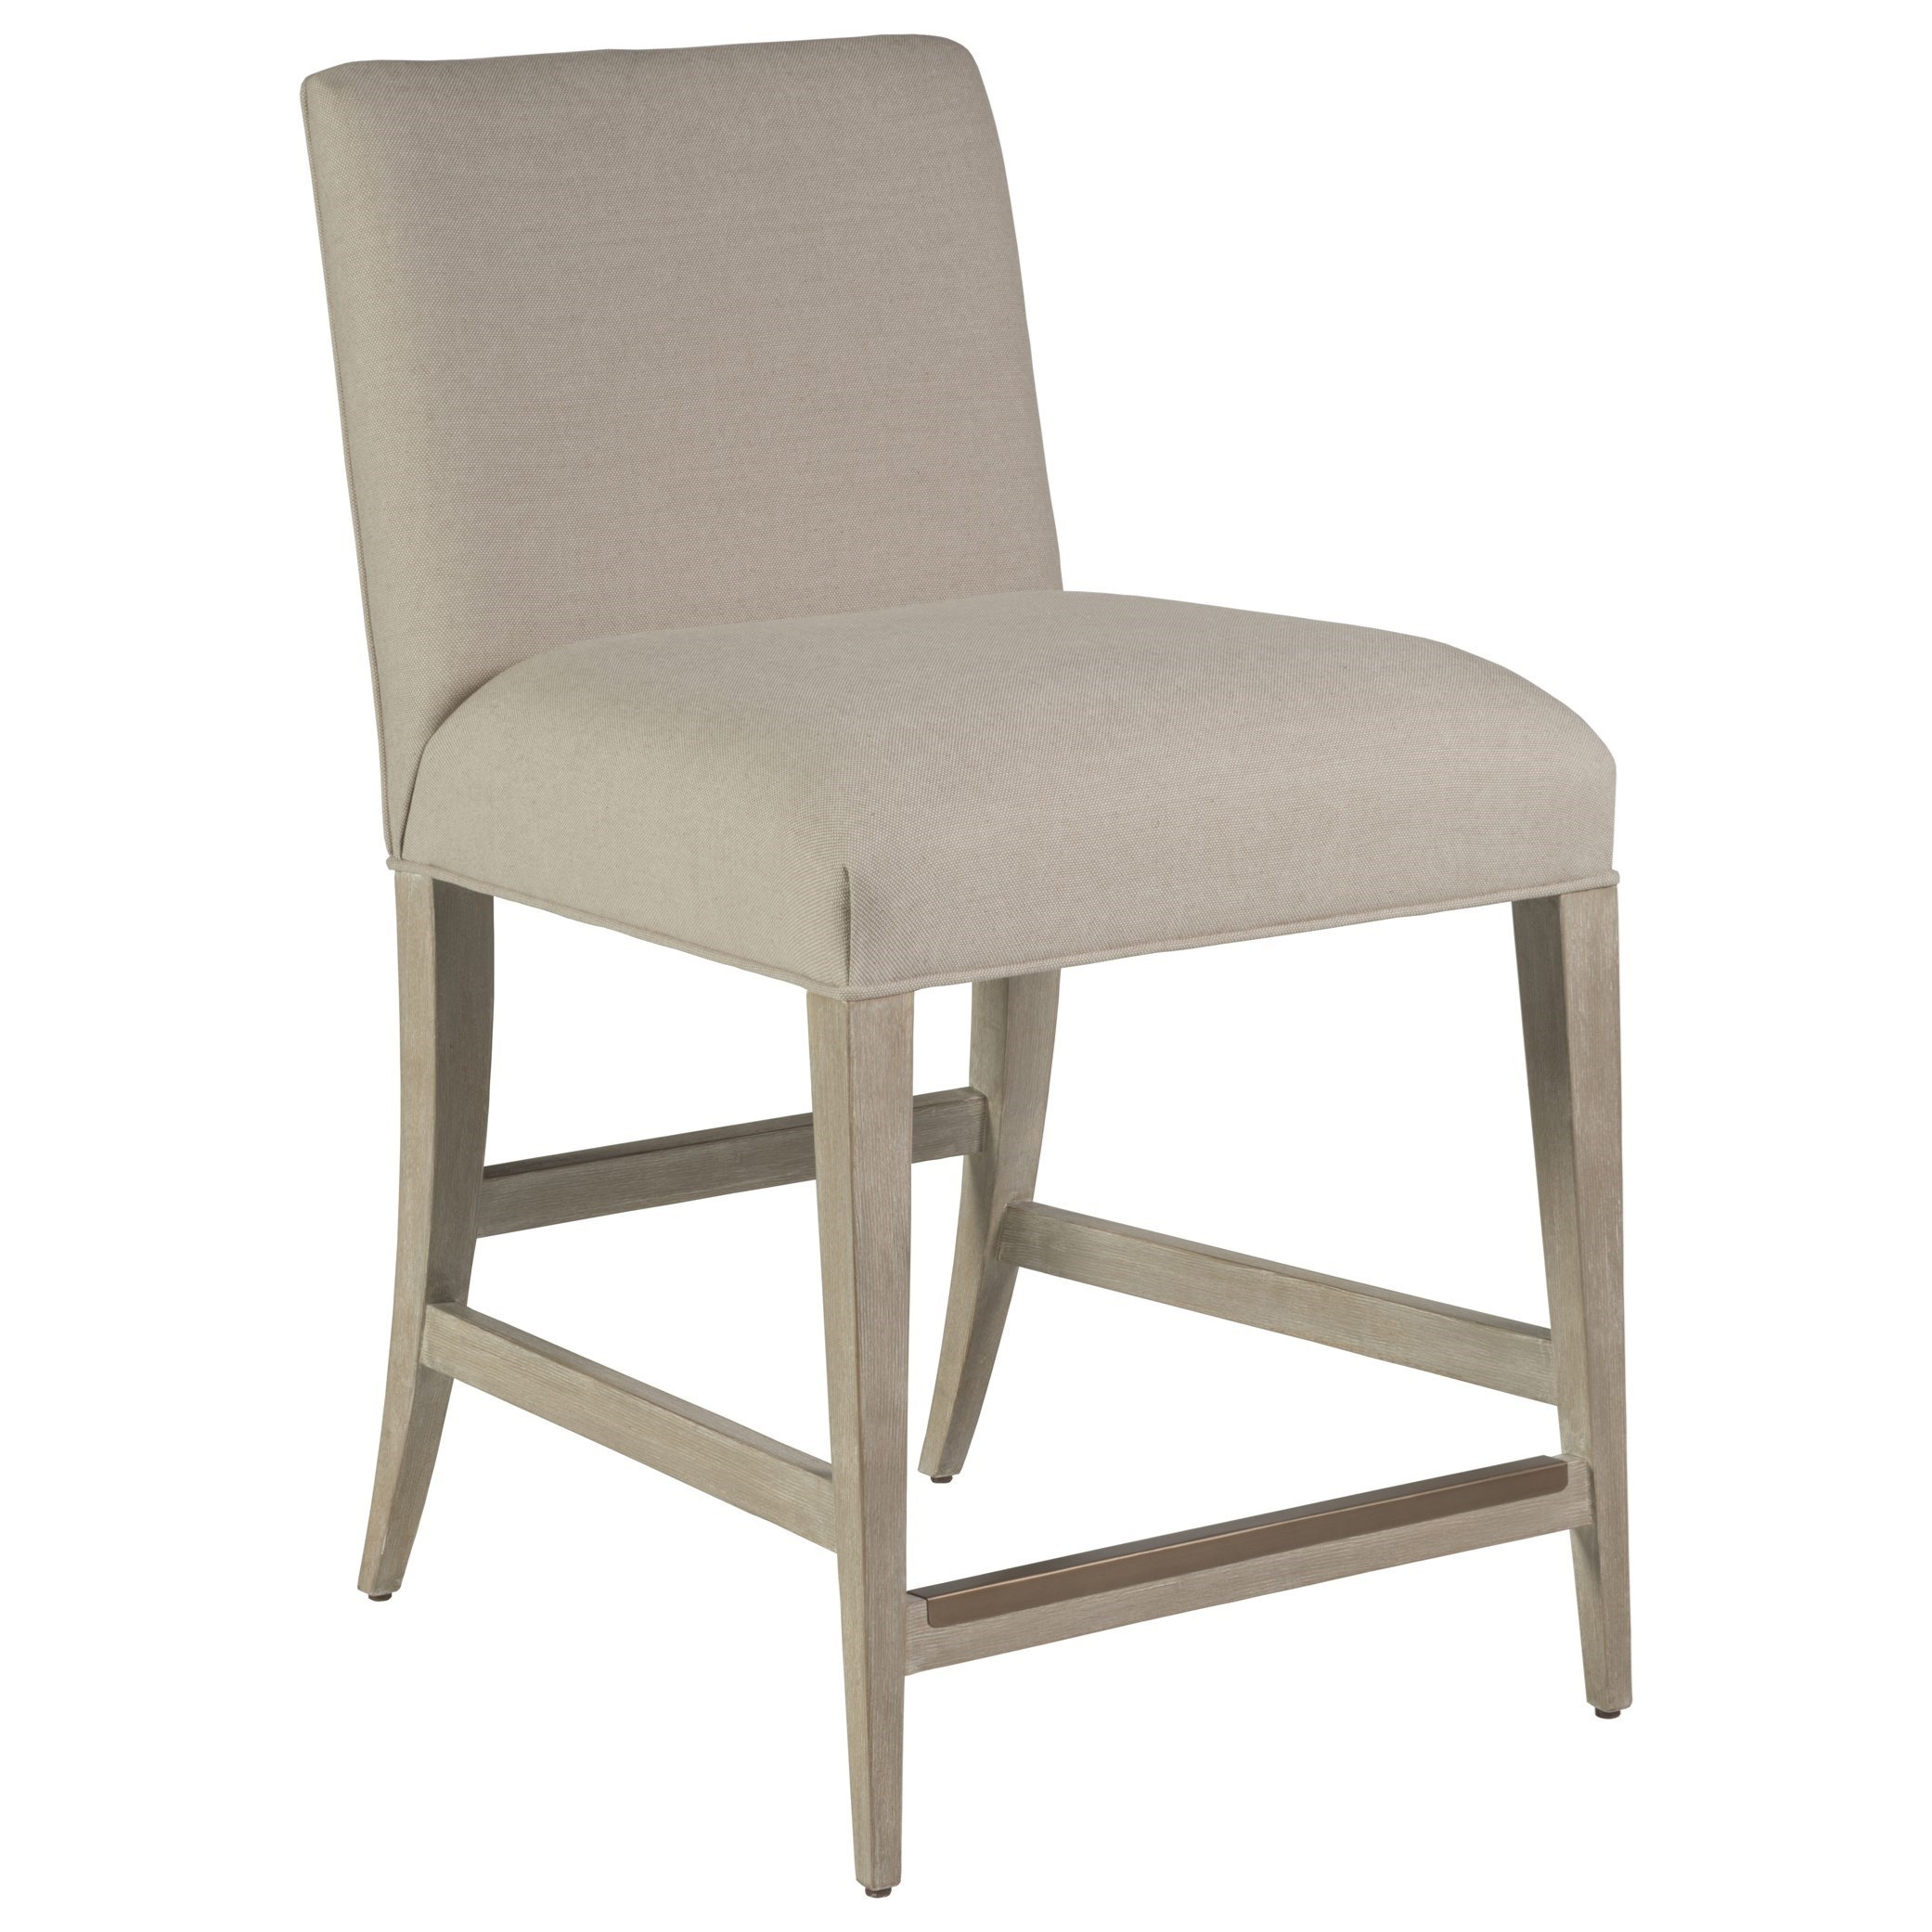 Madox Upholstered Low Back Counter Stool